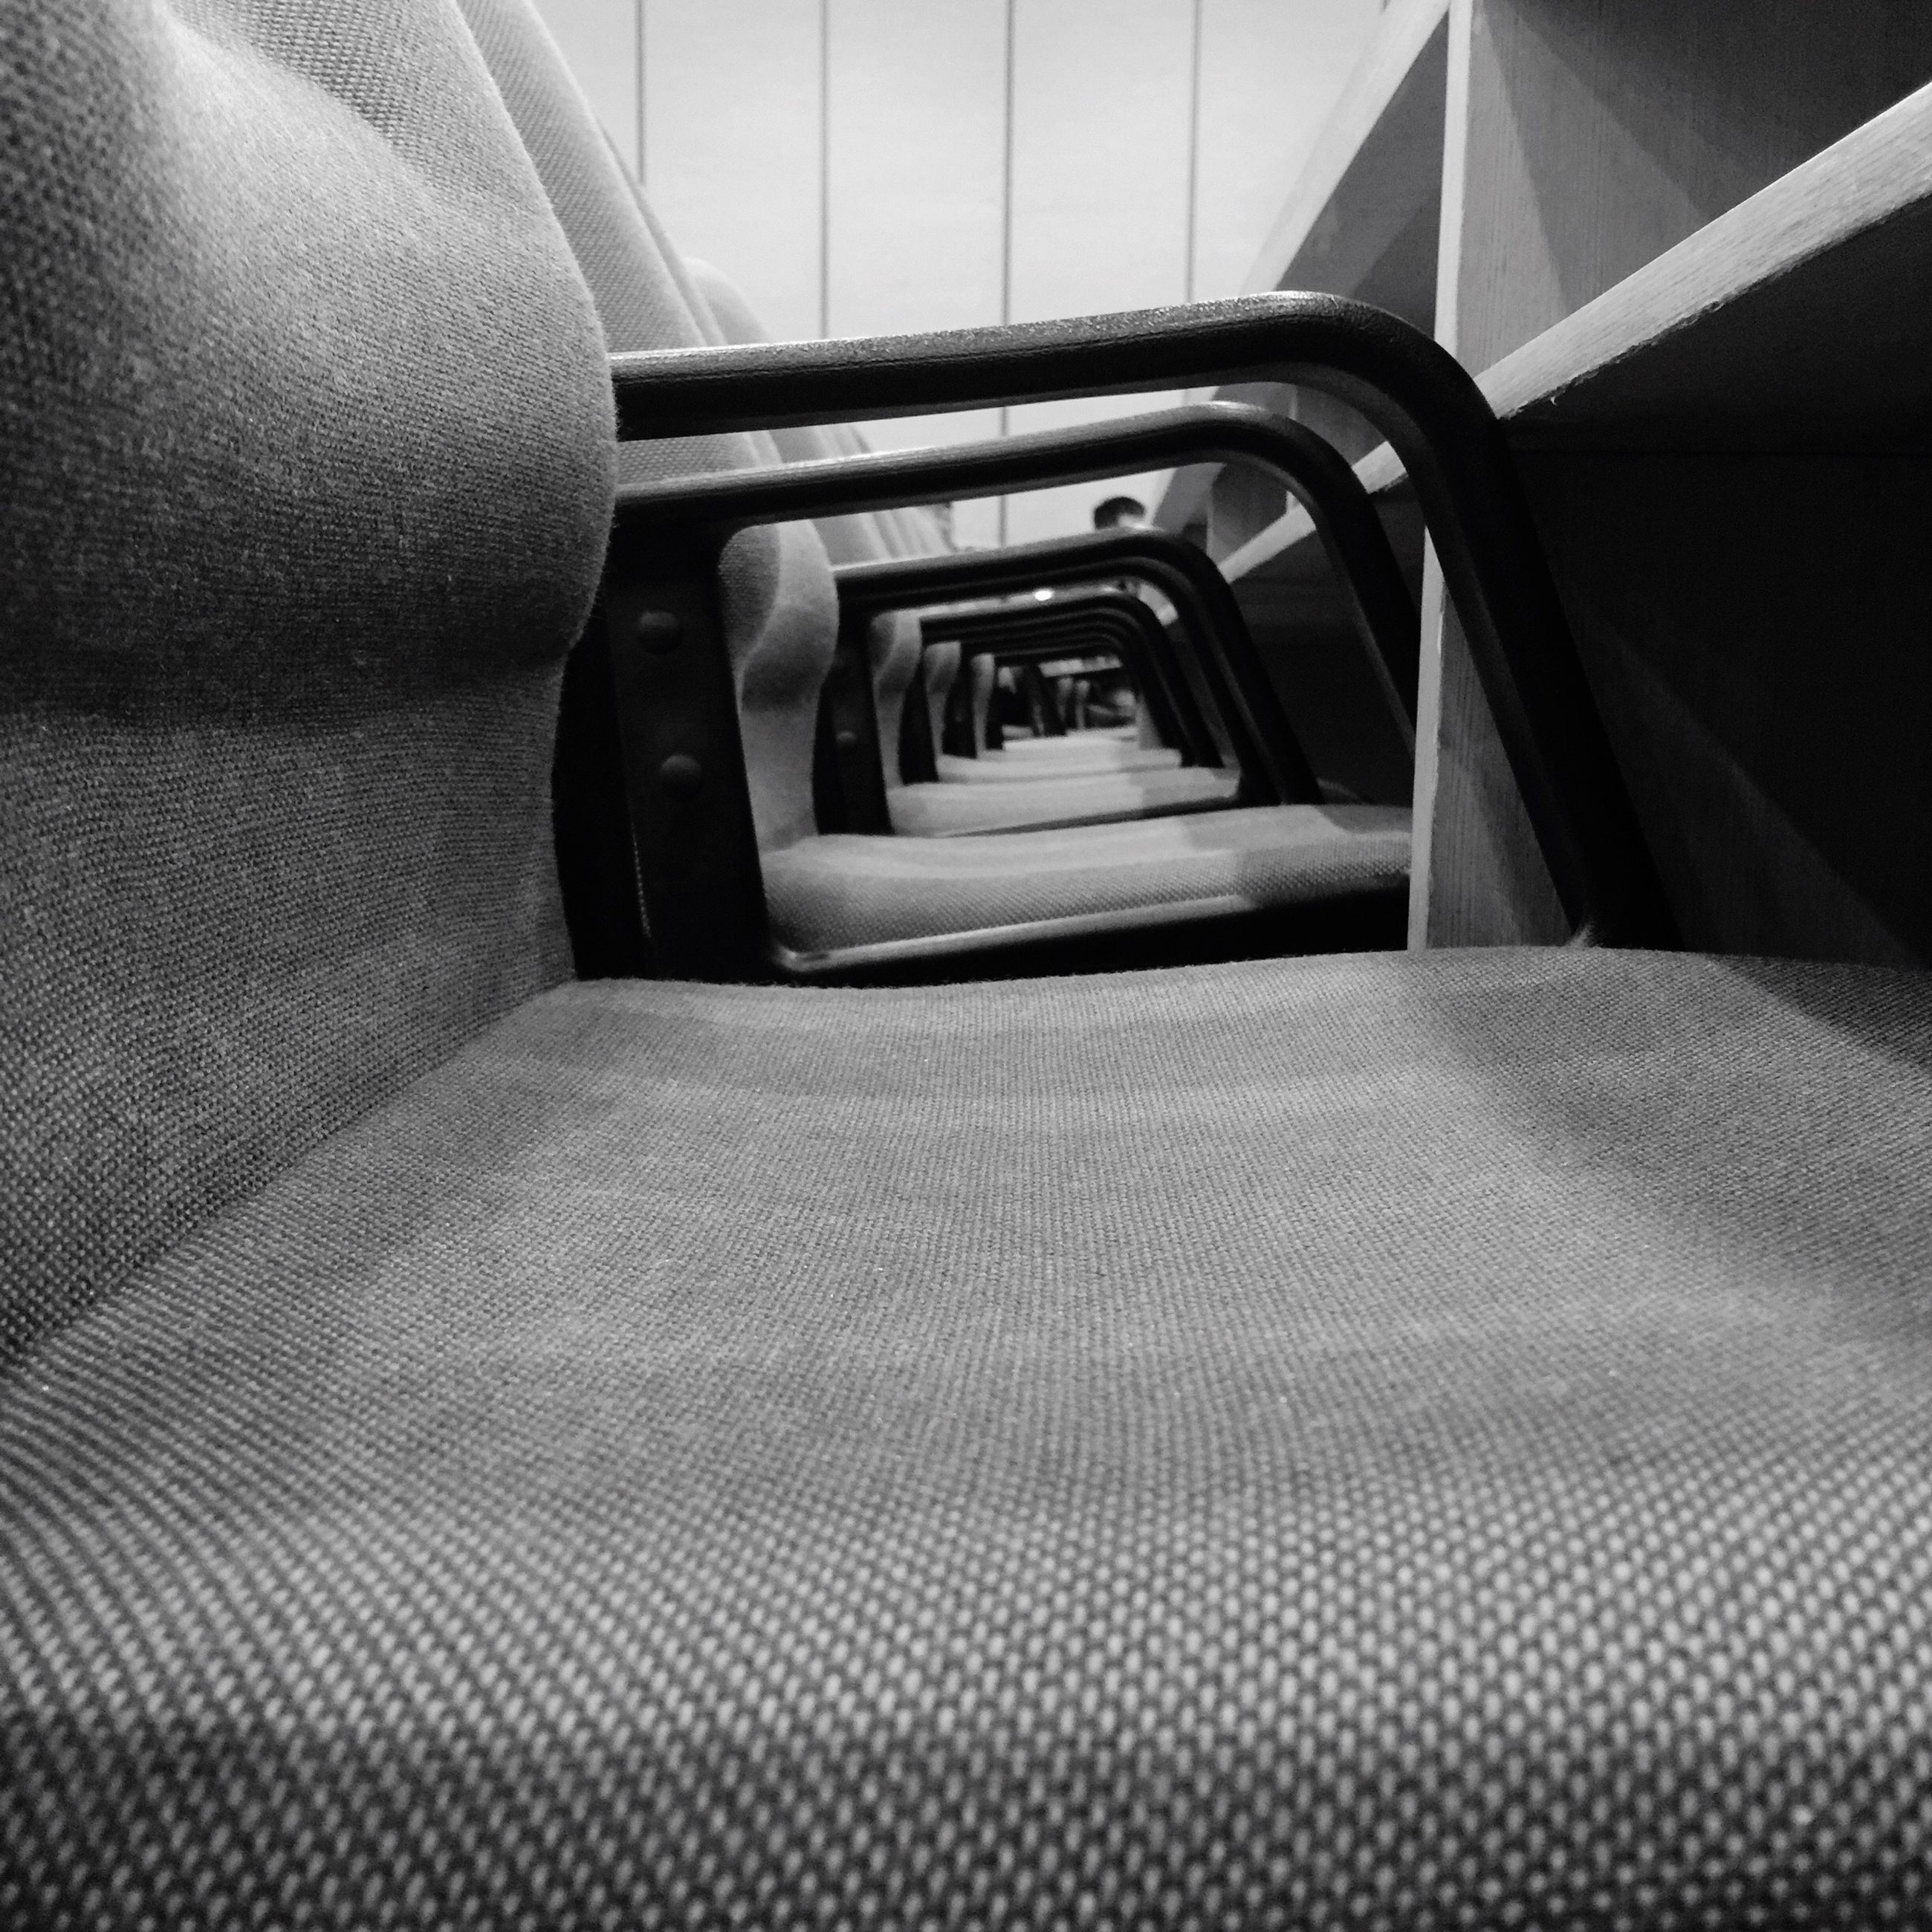 indoors, mode of transport, transportation, vehicle seat, no people, day, close-up